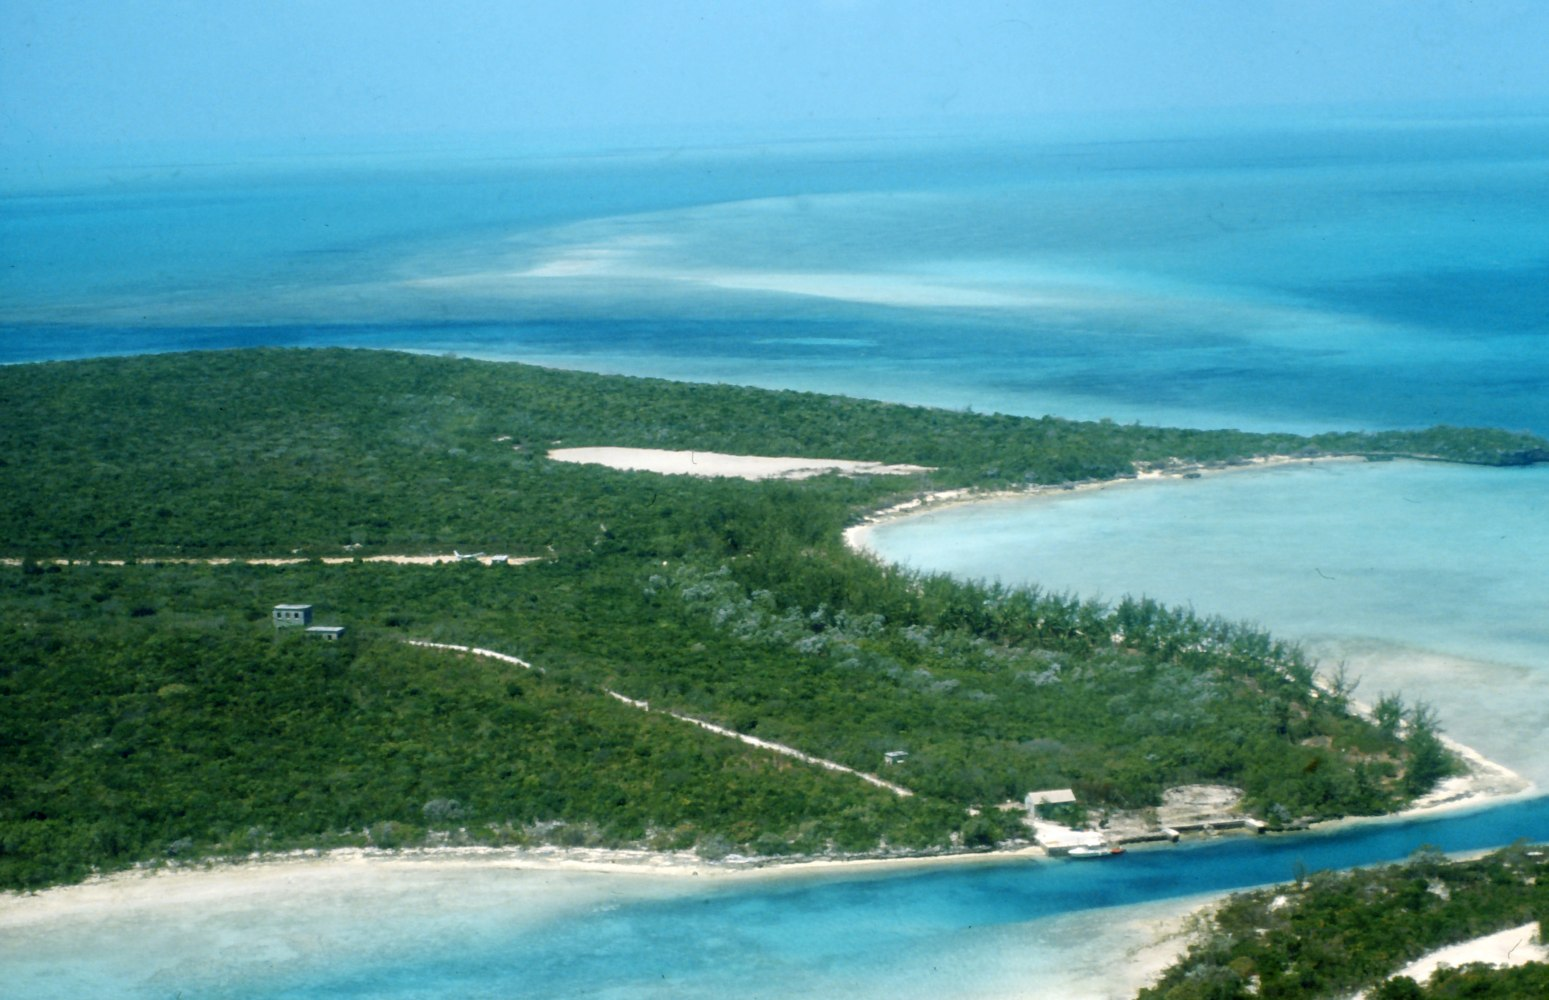 Private islands for sale big darby island bahamas for Bahamas private island for sale